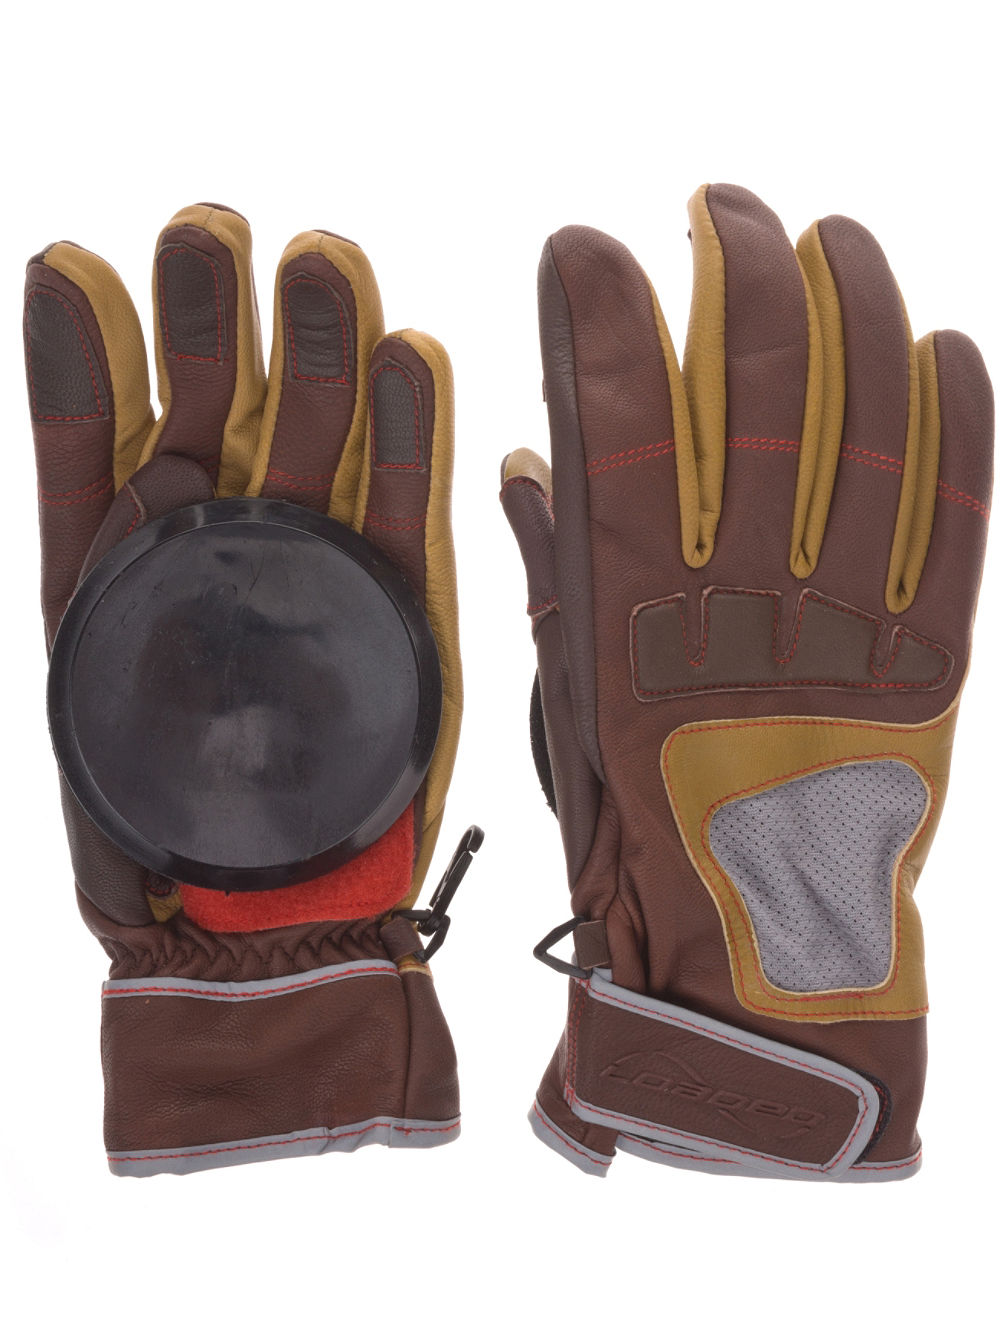 Advanced Freeride Slide Gloves